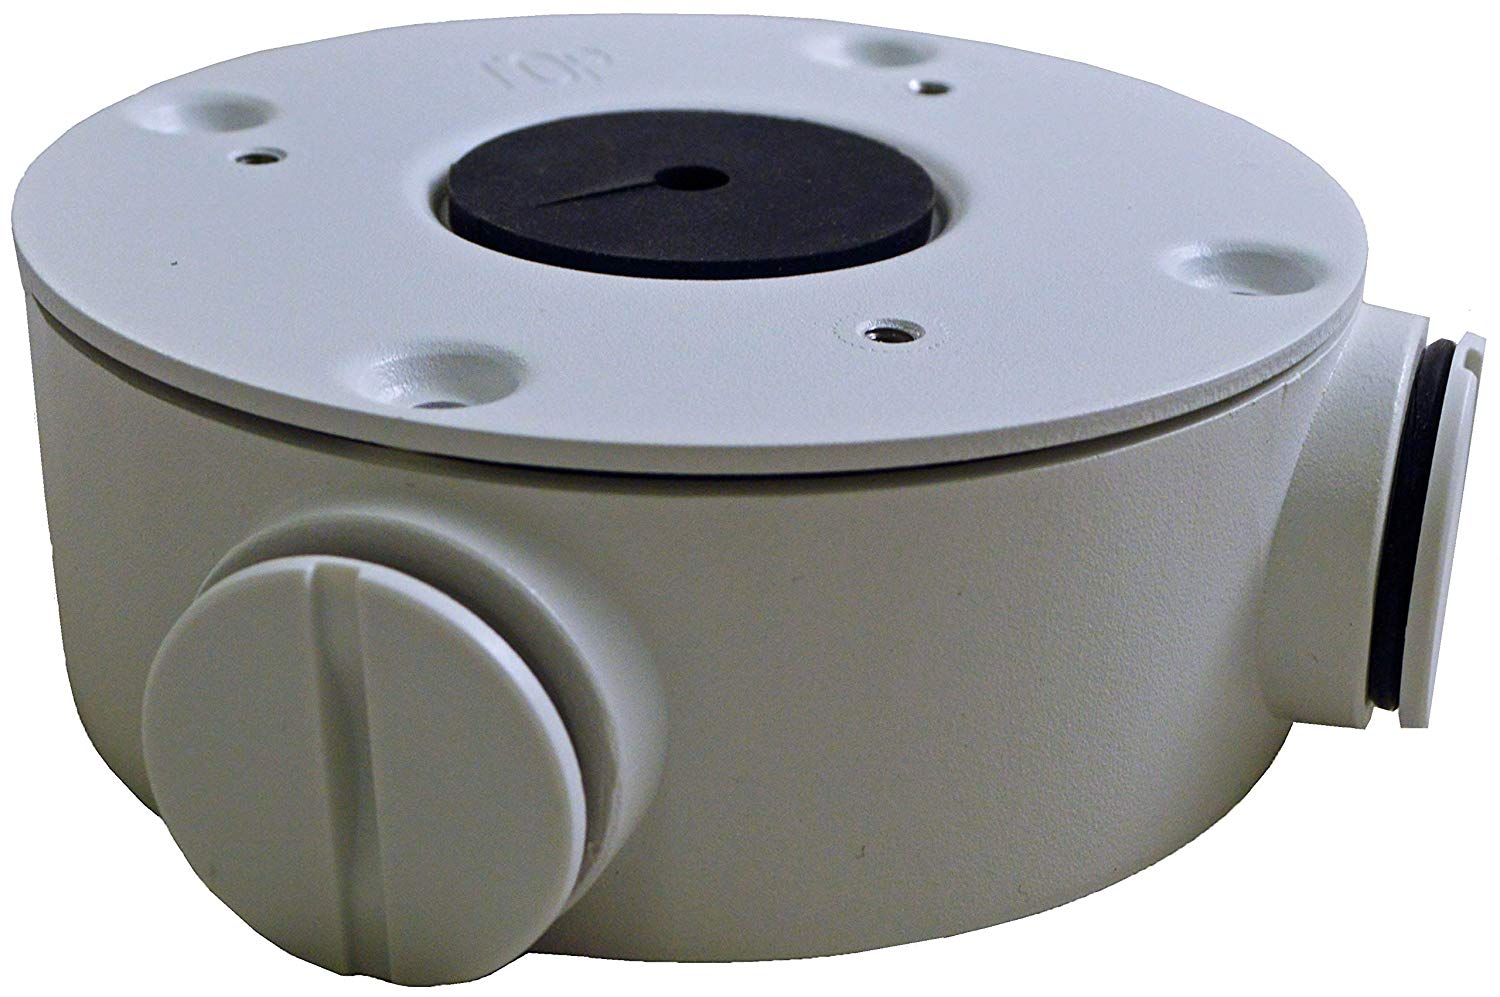 Weller 0058762767 is easy click 60mm Straight Intake Fitting for WFE 2S WFE 4S Zero Smog 4V and pre filter box.